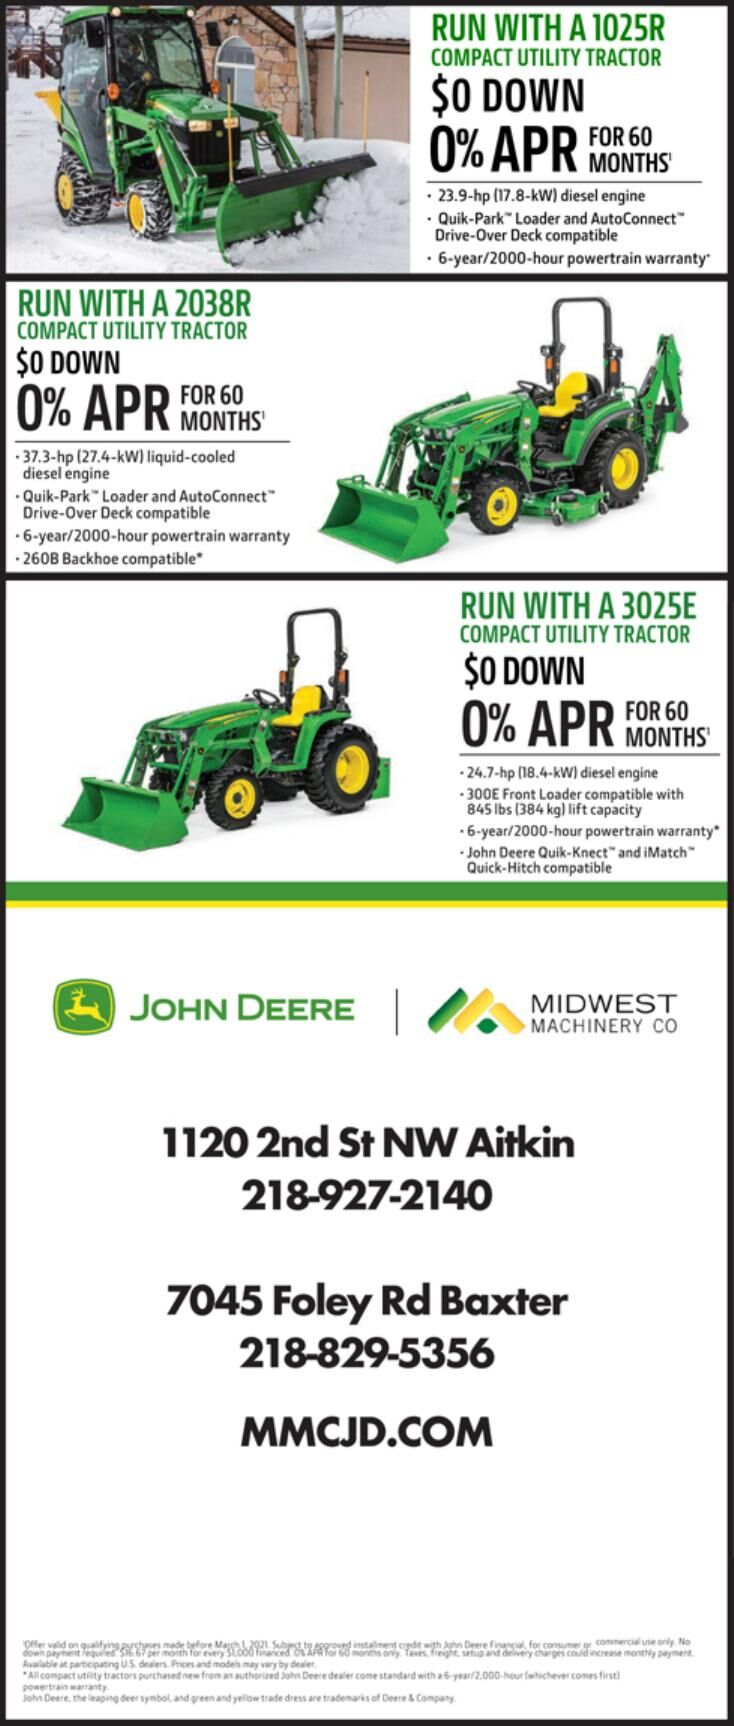 Midwest Machinery 2-6-2021